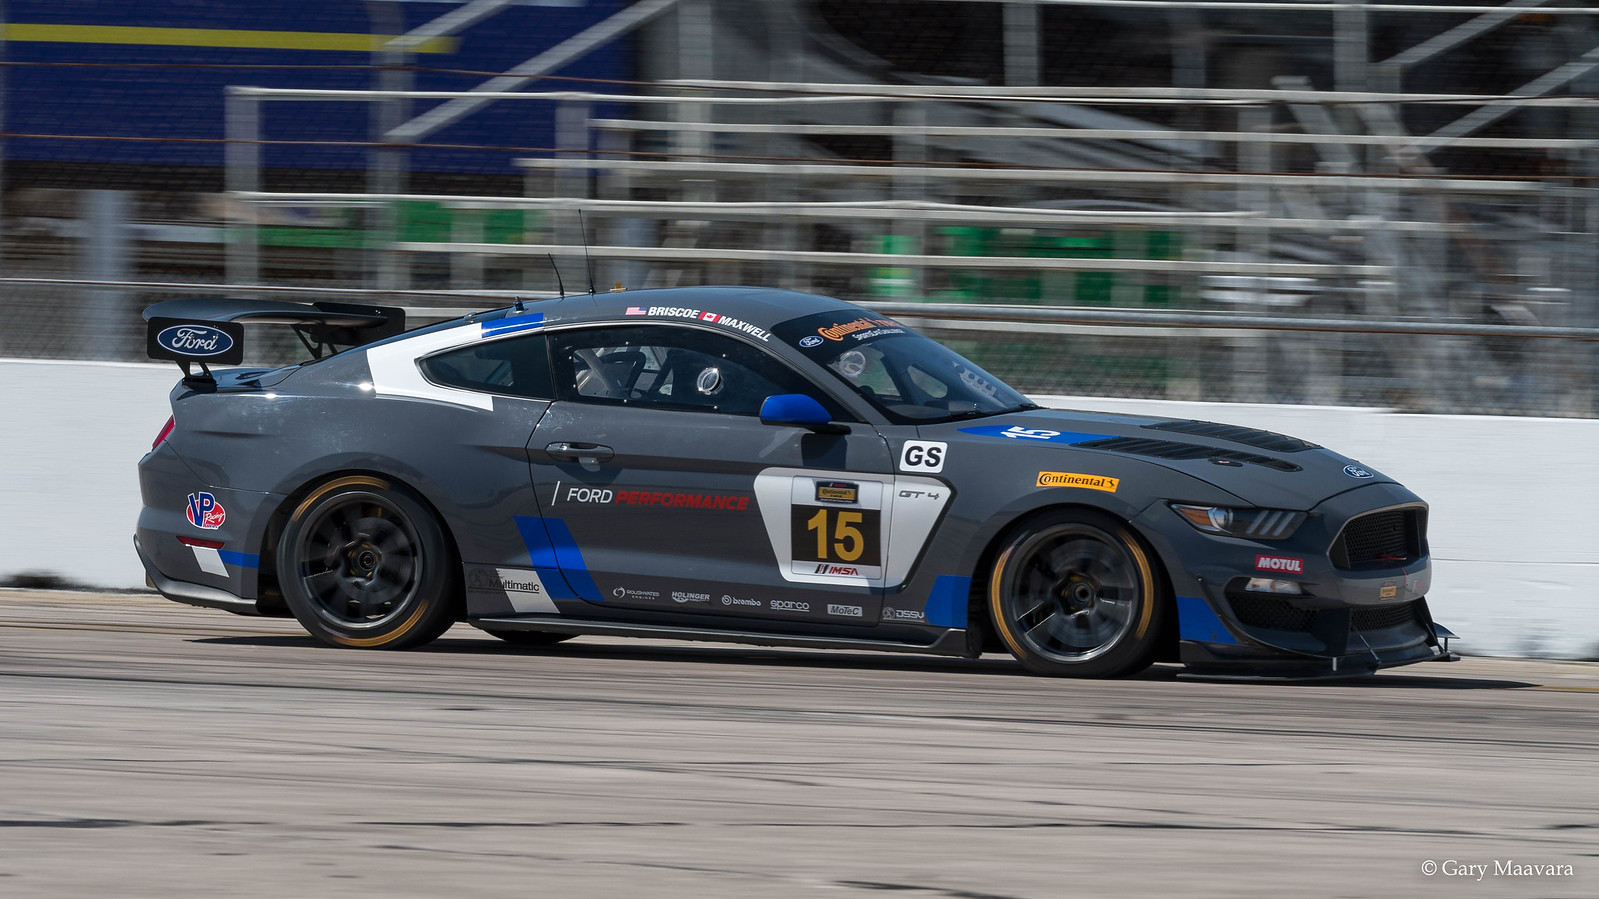 TrackWorthy - No. 15 Ford Mustang GT4 GS